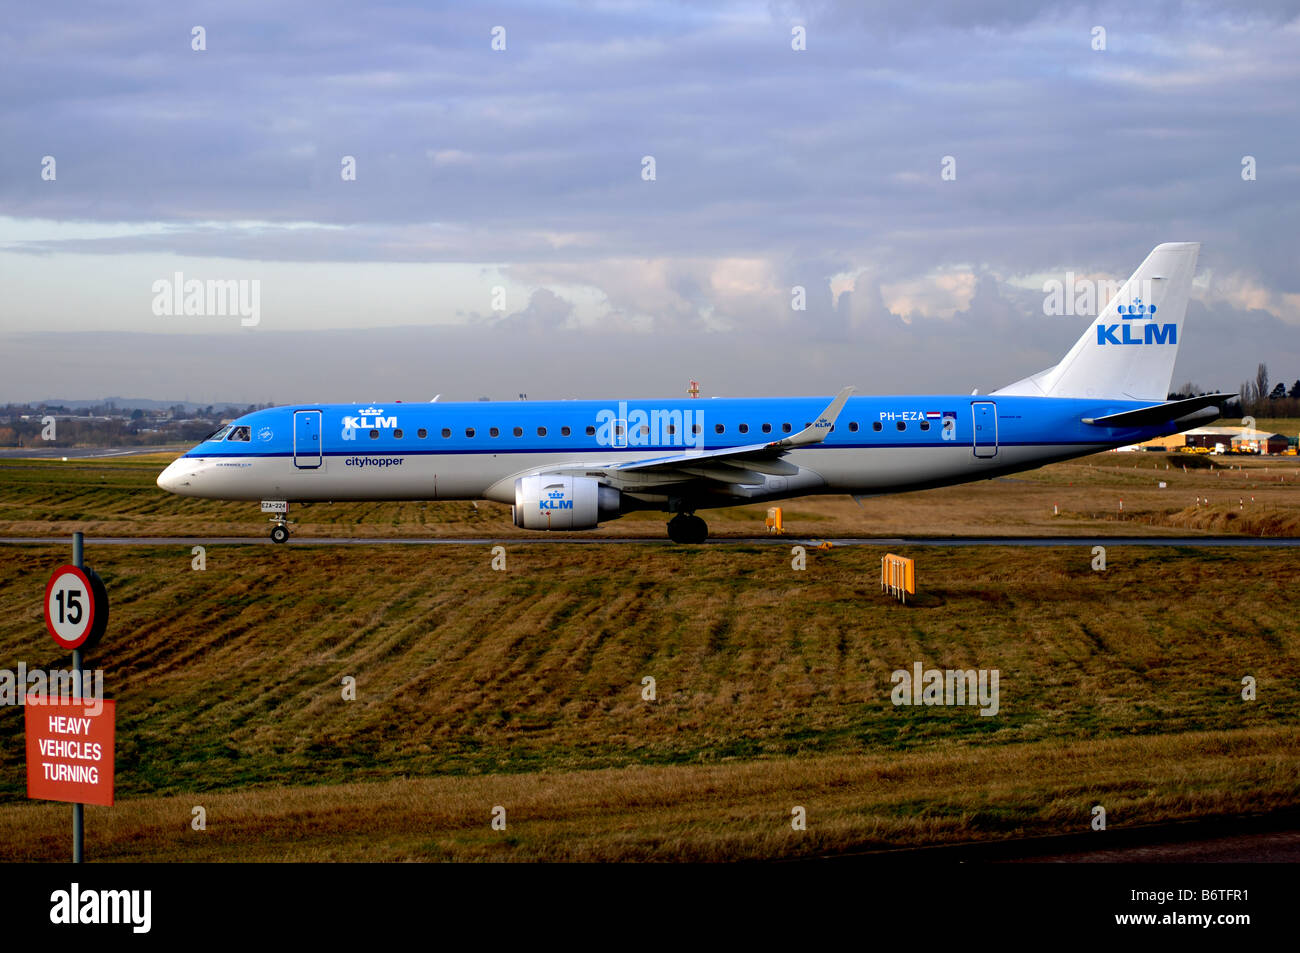 KLM cityhopper Embraer 190 aircraft at Birmingham International Airport UK - Stock Image